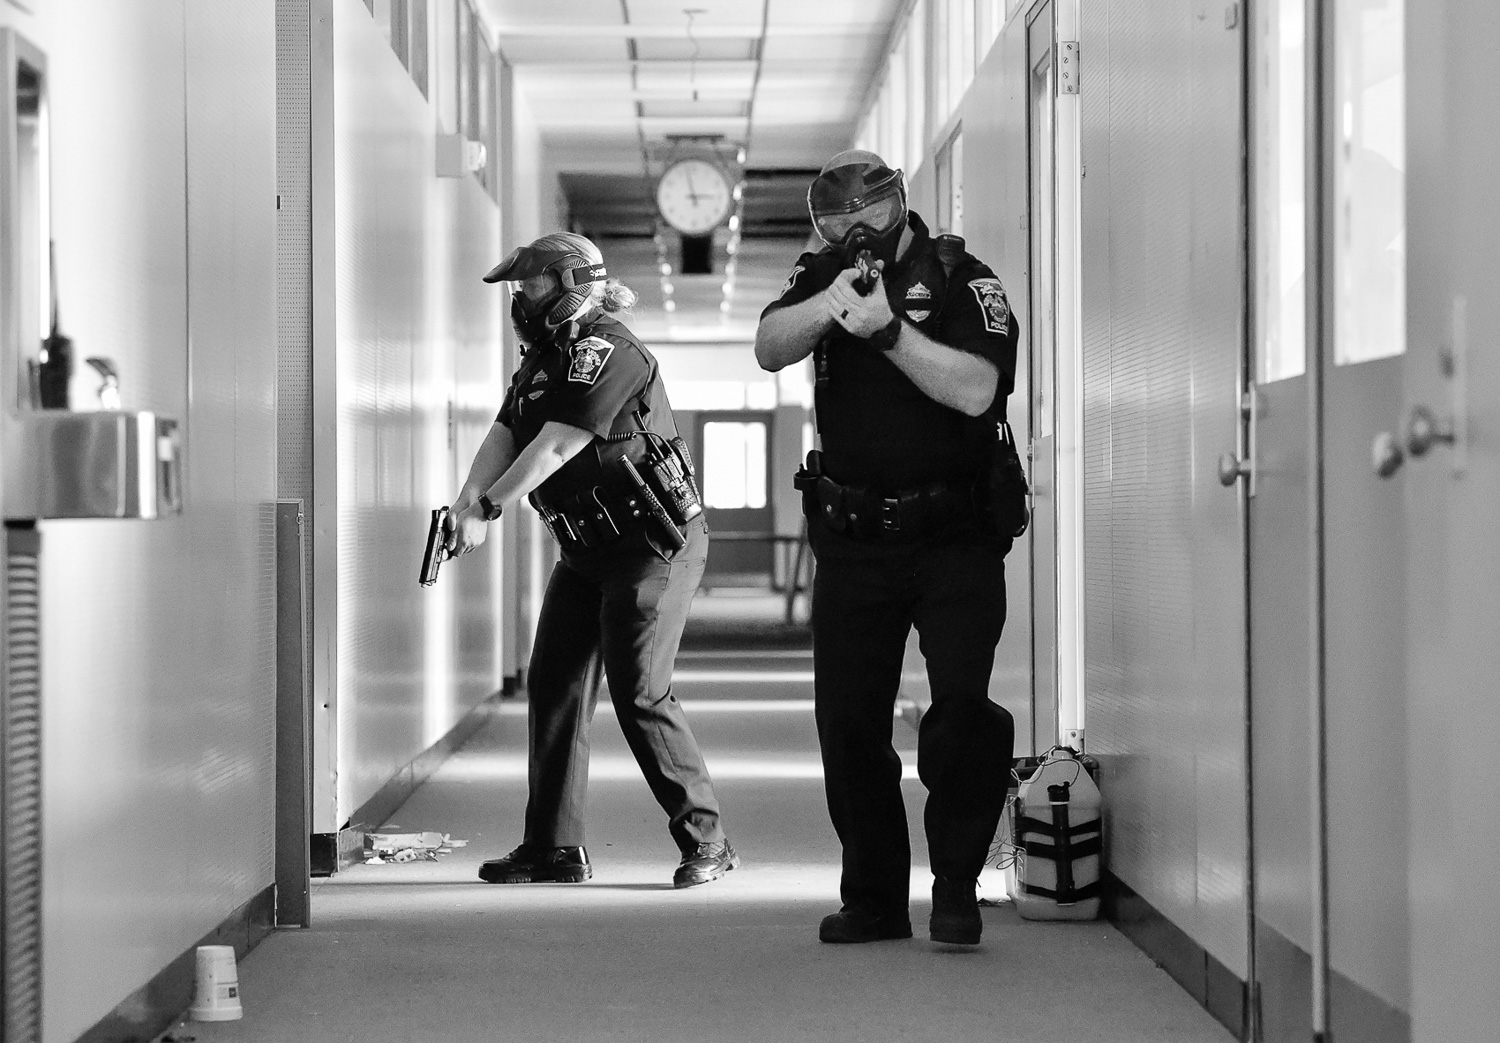 Nikon D4s, 1/1,000 @ f/4, ISO 10,000  North Andover police officer Ashley Kneeland, left, and officer Jason Wedge, right, take part in an active shooter training at Osgood Landing on Wednesday, April 18, 2018. [Wicked Local Staff Photo / David Sokol]